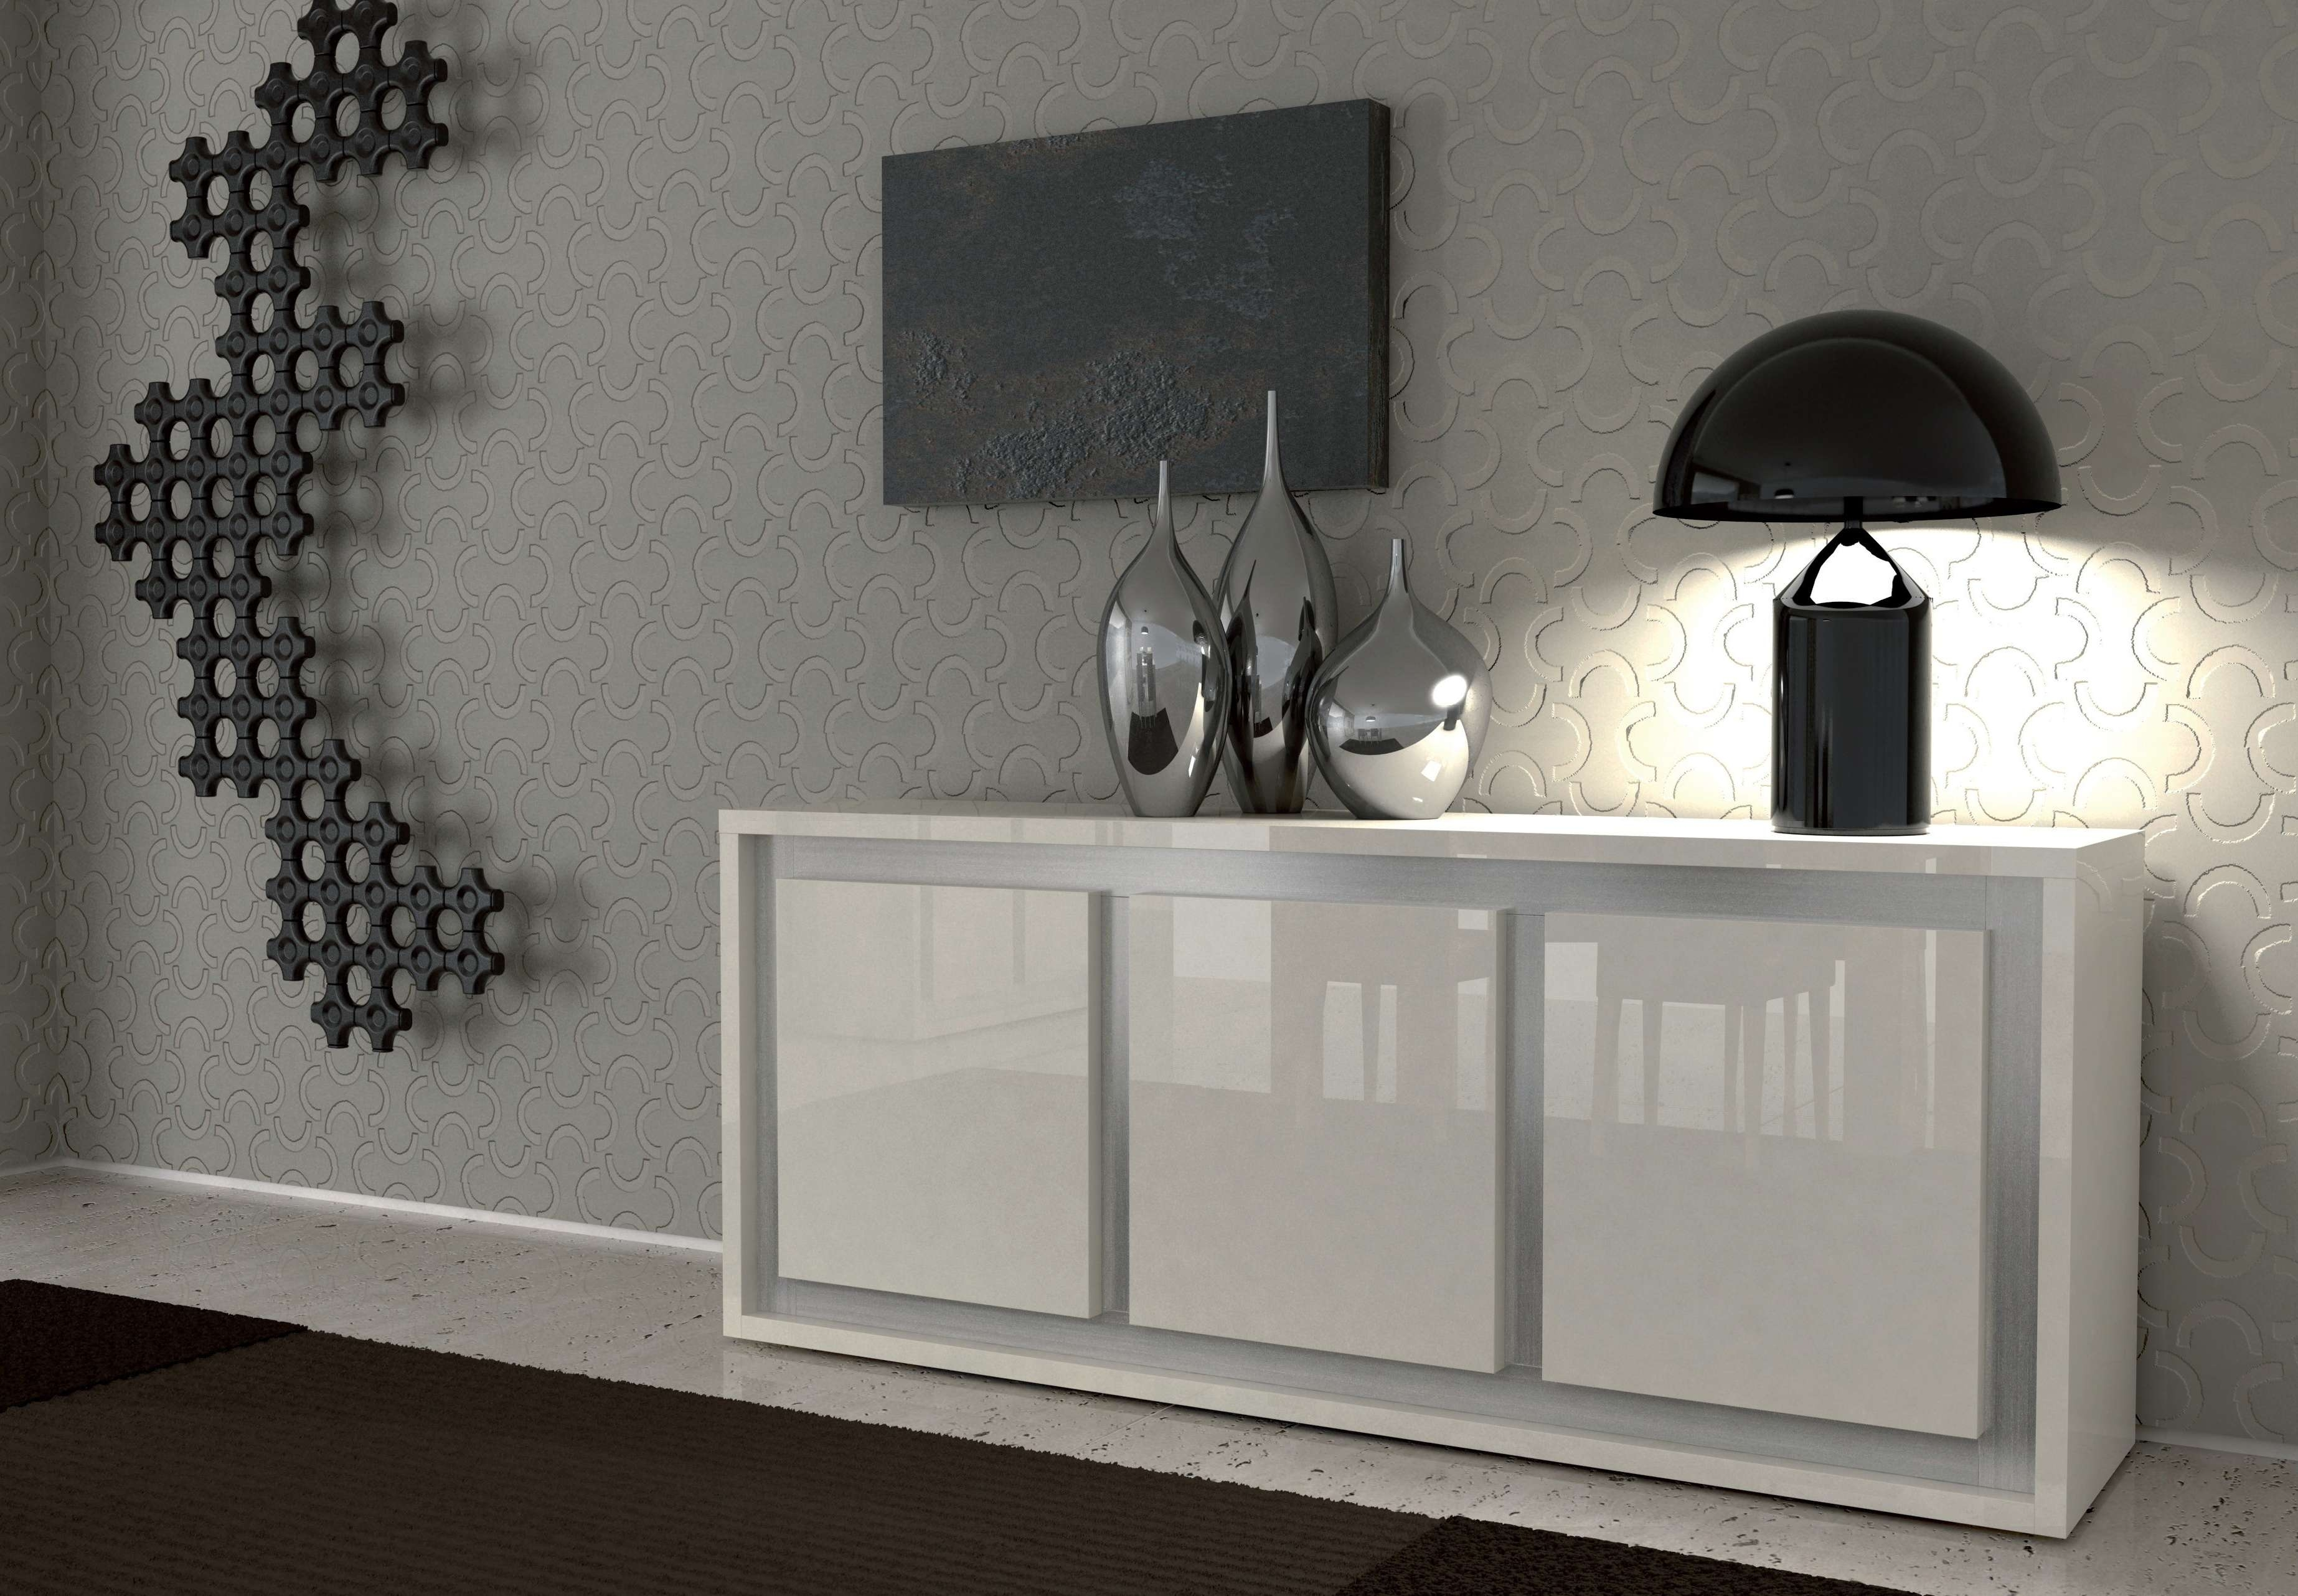 Furniture: White Sideboard Buffet With Unique Black Table Lamp And With Regard To Unique Sideboards And Buffets (View 3 of 20)